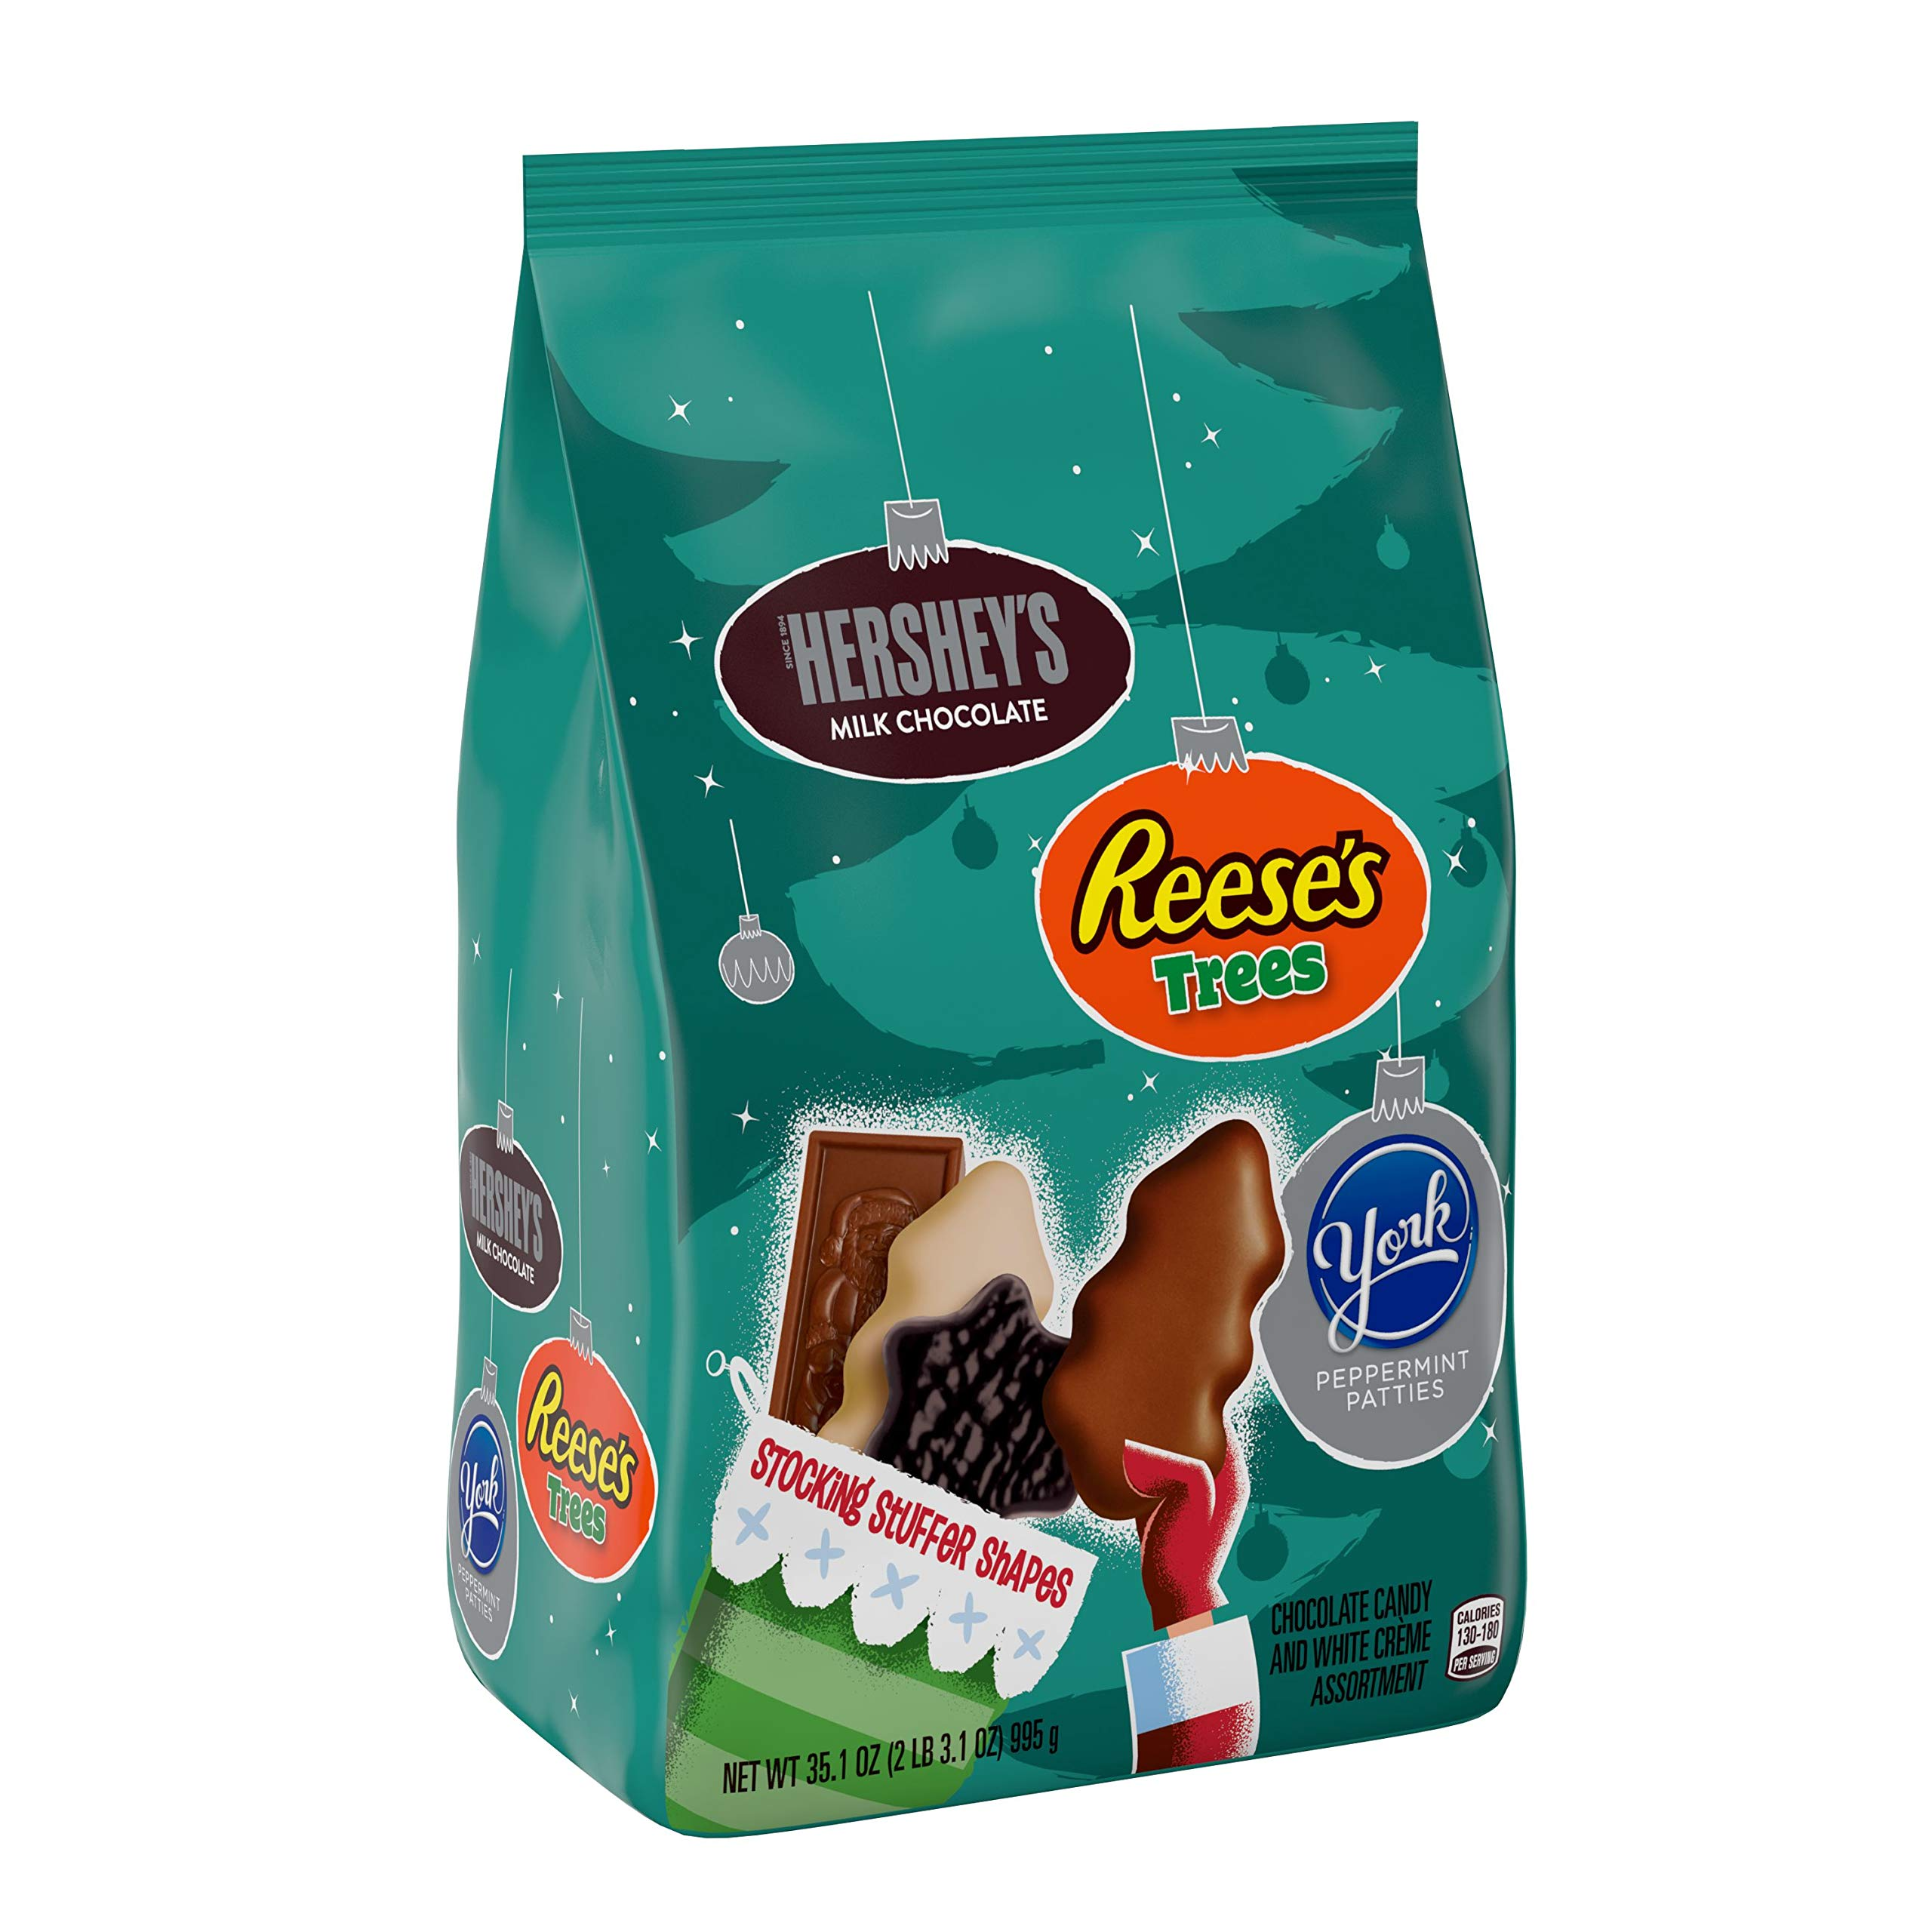 HERSHEY'S Holiday Candy, Holiday Shapes Assortment (Milk Chocolate Santas, REESE'S Trees, YORK Snowflakes) 35.1 oz.